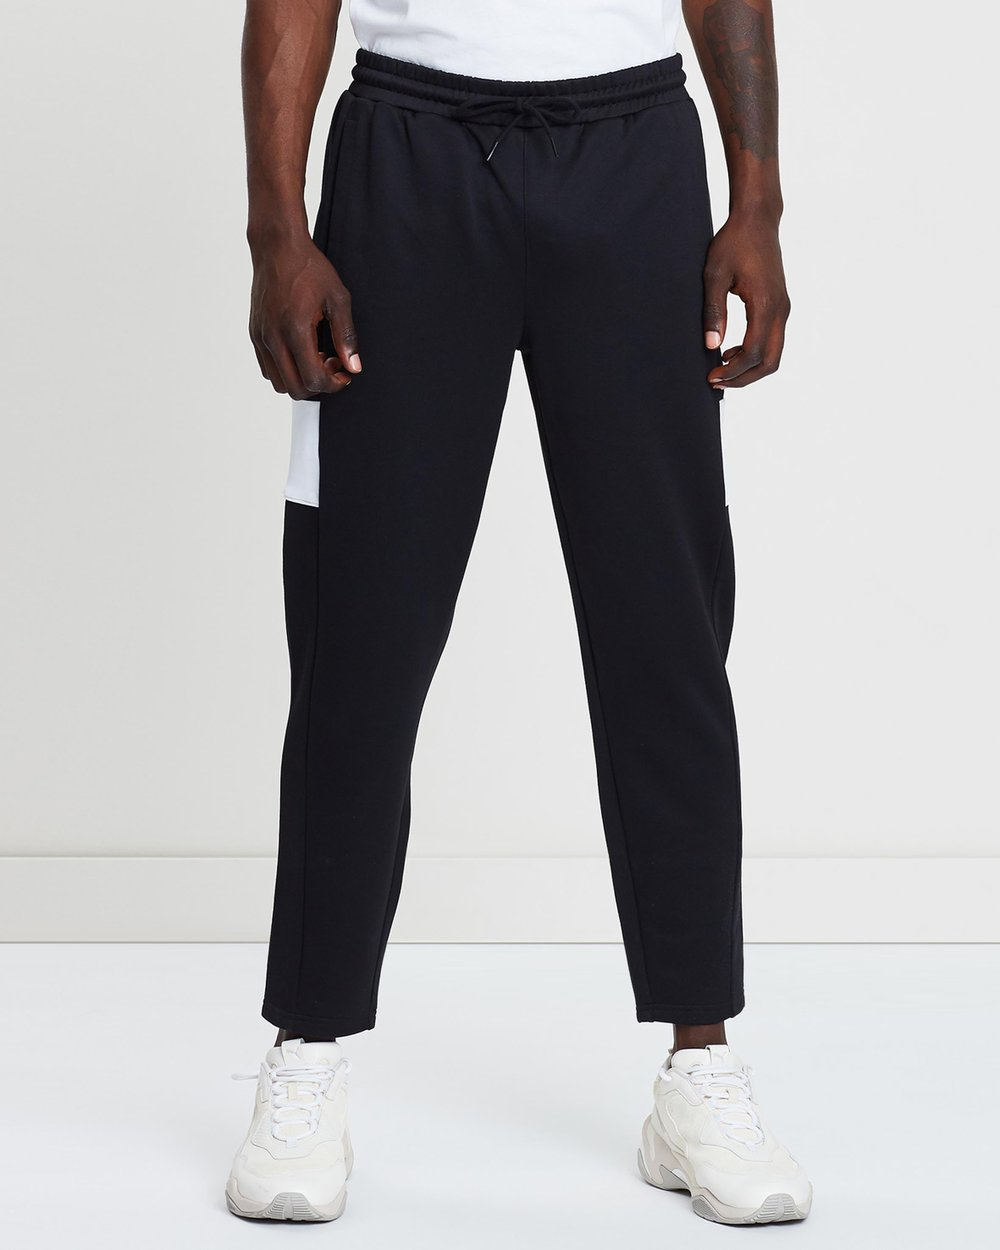 bdf86c55b Homage to Archive Crop Pants by Puma Online | THE ICONIC | Australia